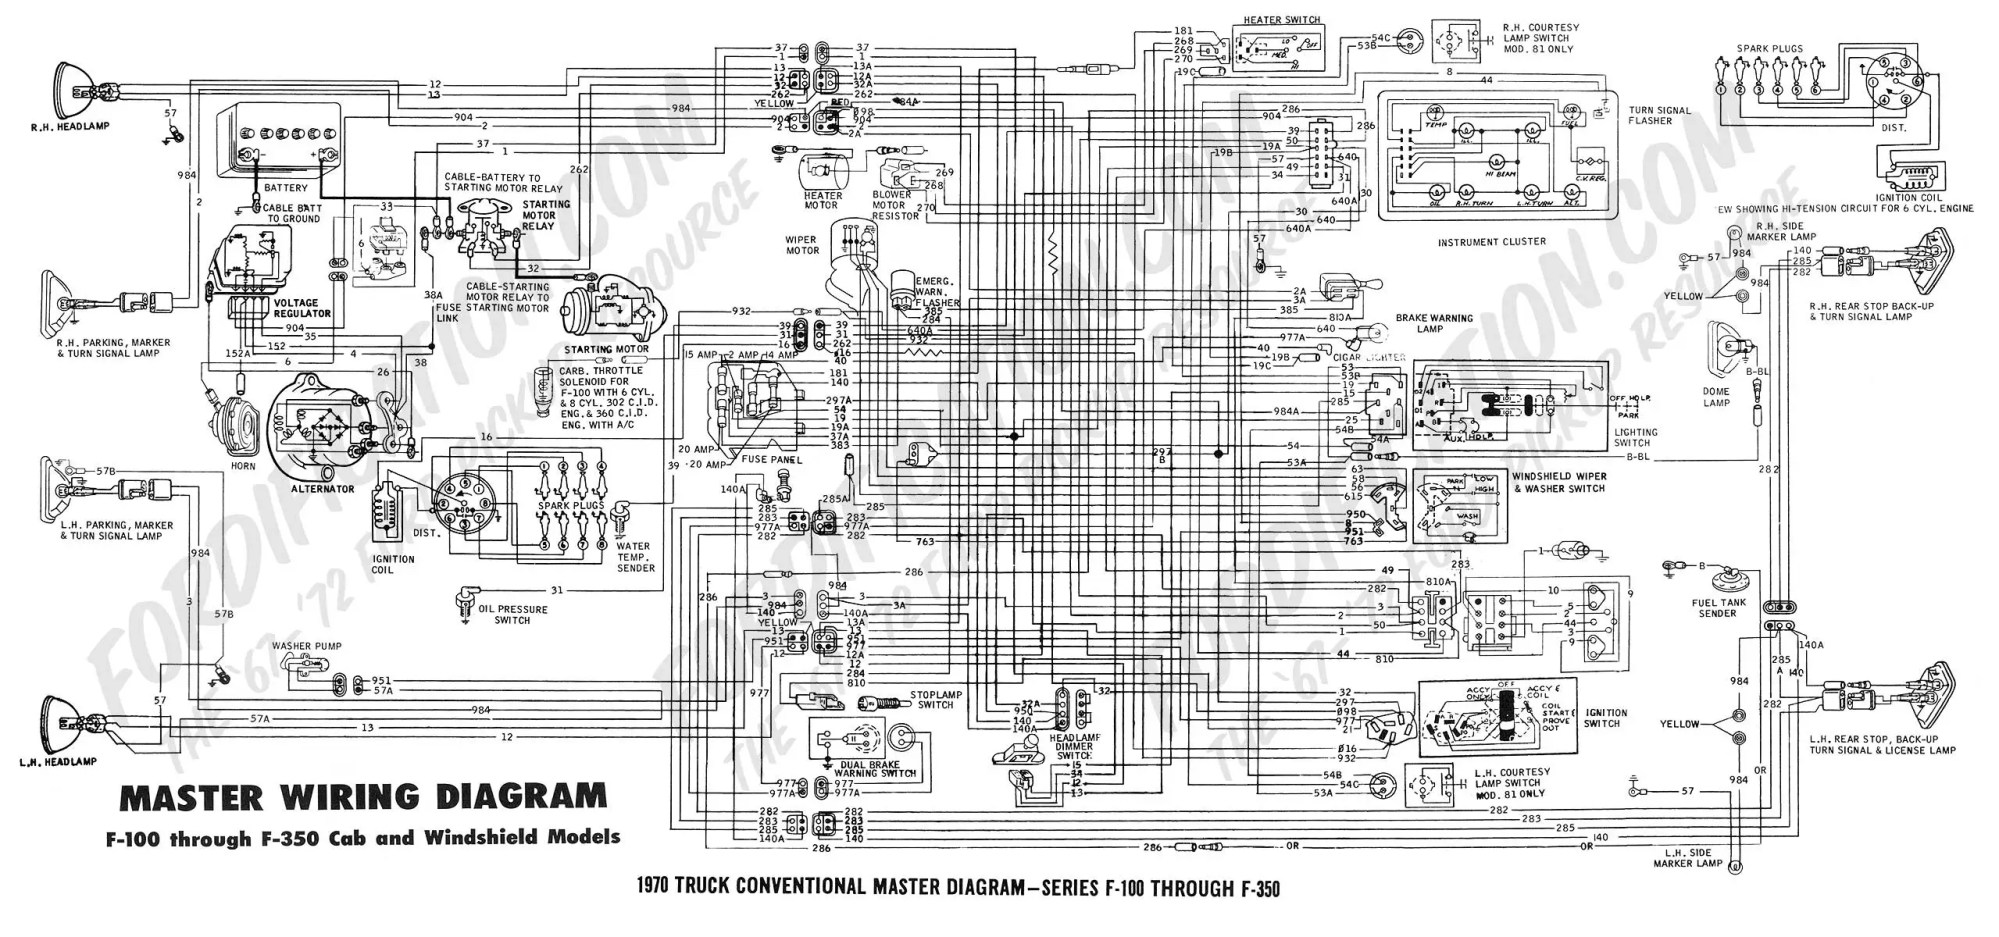 hight resolution of 1970 ford f100 wiring diagram wiring diagram advanceford truck technical drawings and schematics section h wiring